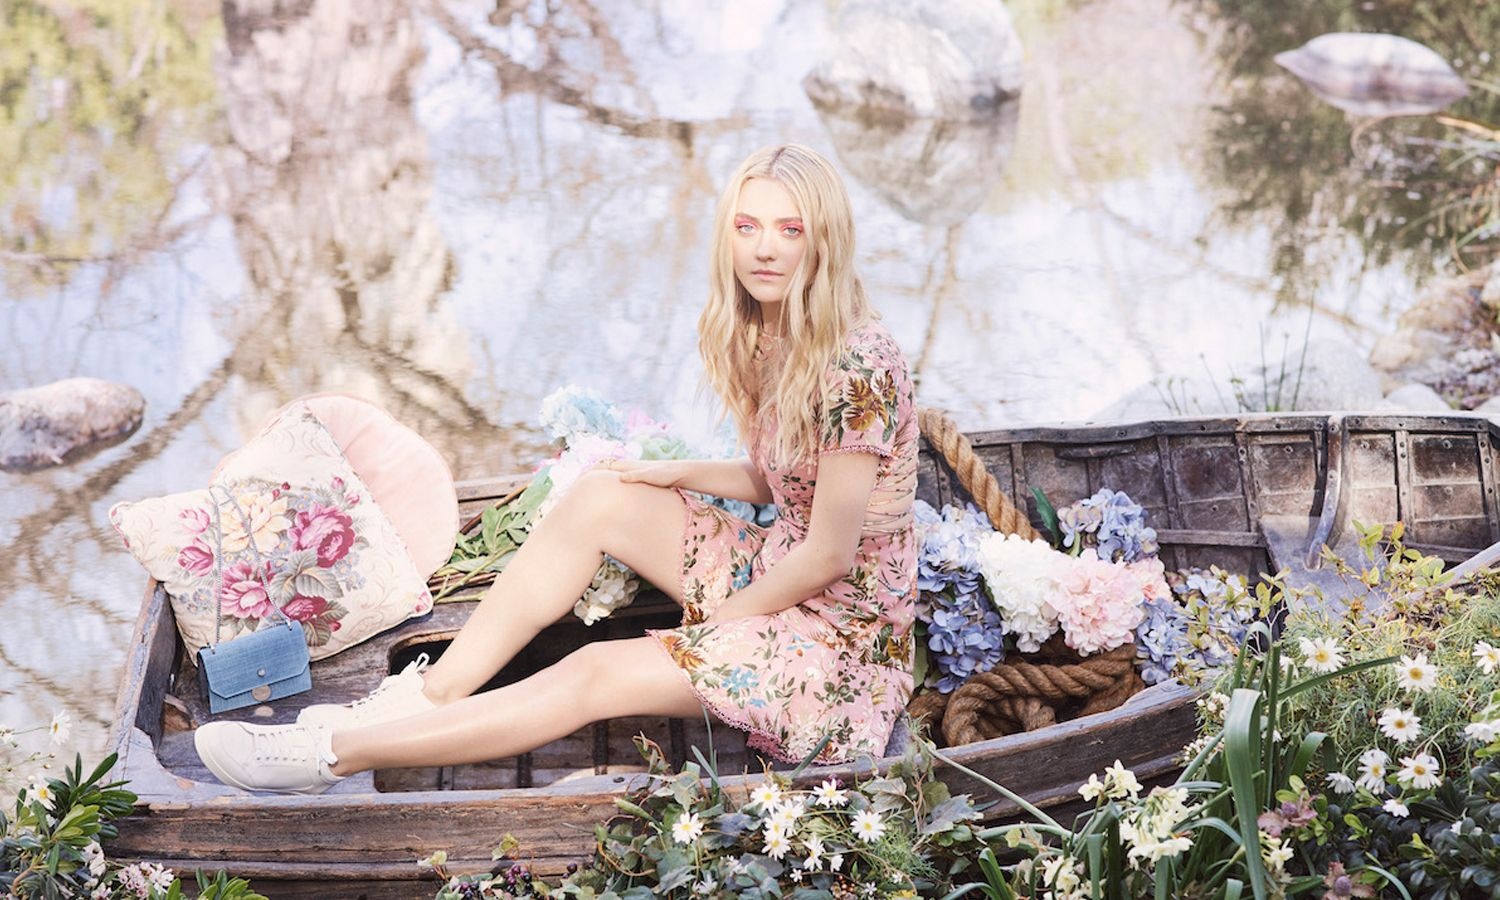 Dakota Fanning On Her Style, Career And Working With Jimmy Choo